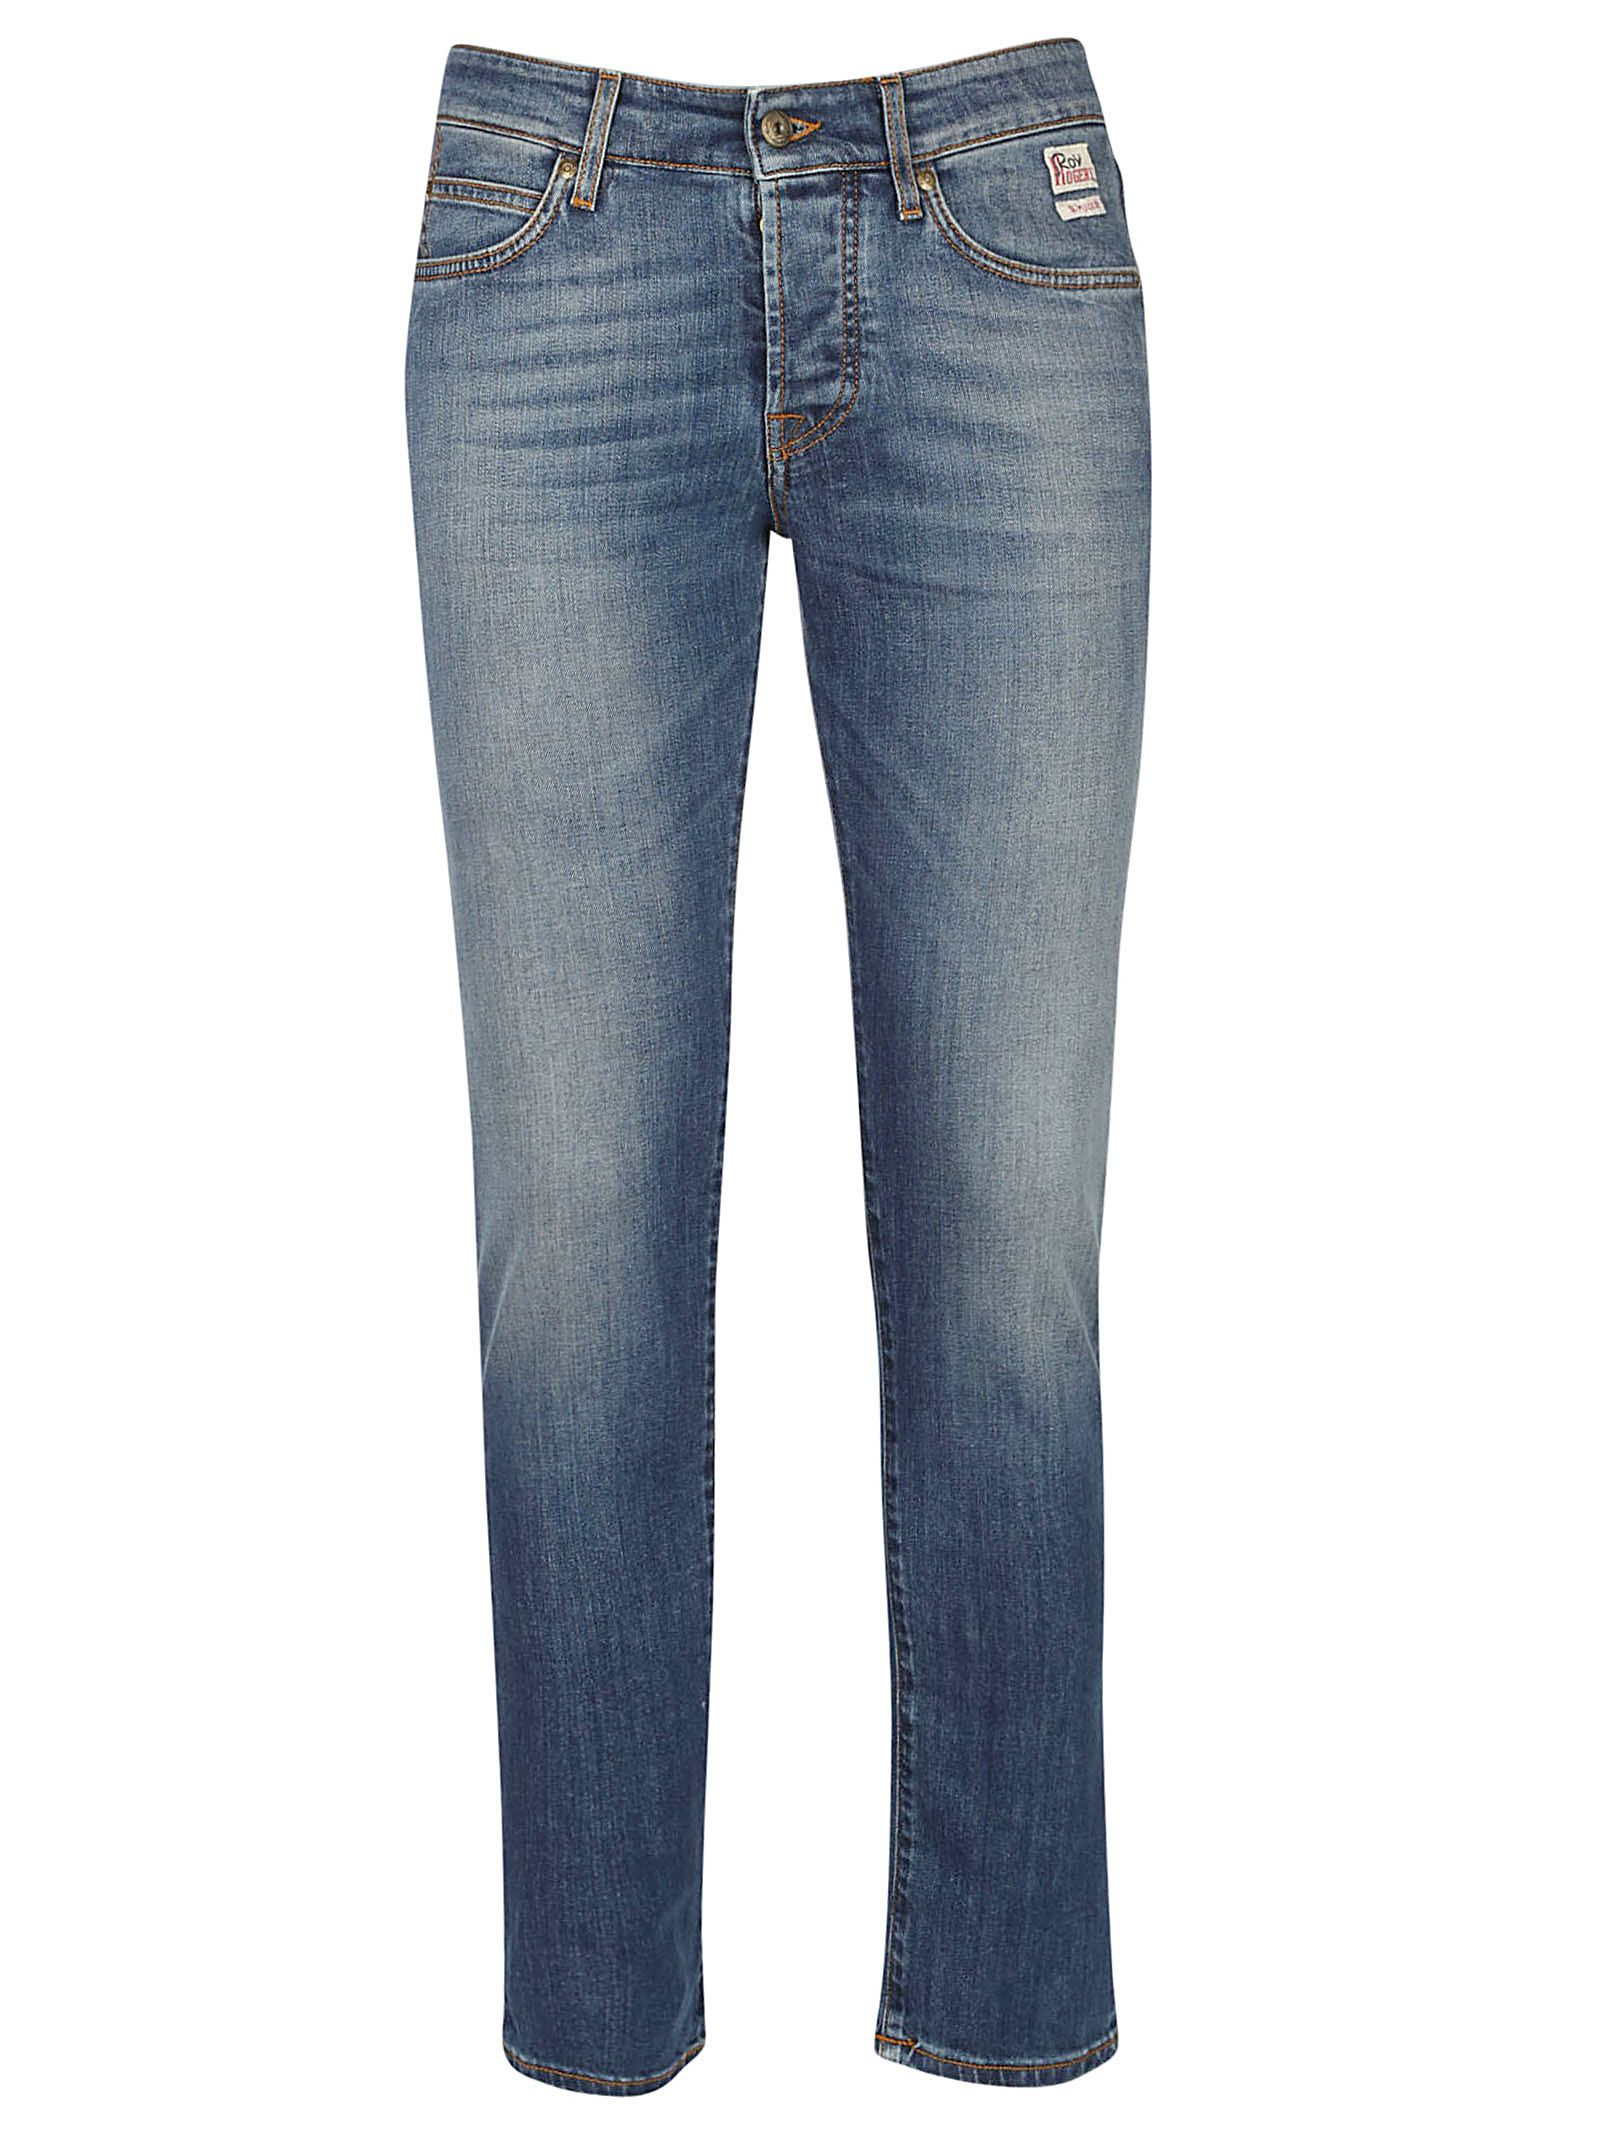 ROY ROGERS Emmy Jeans in Blue